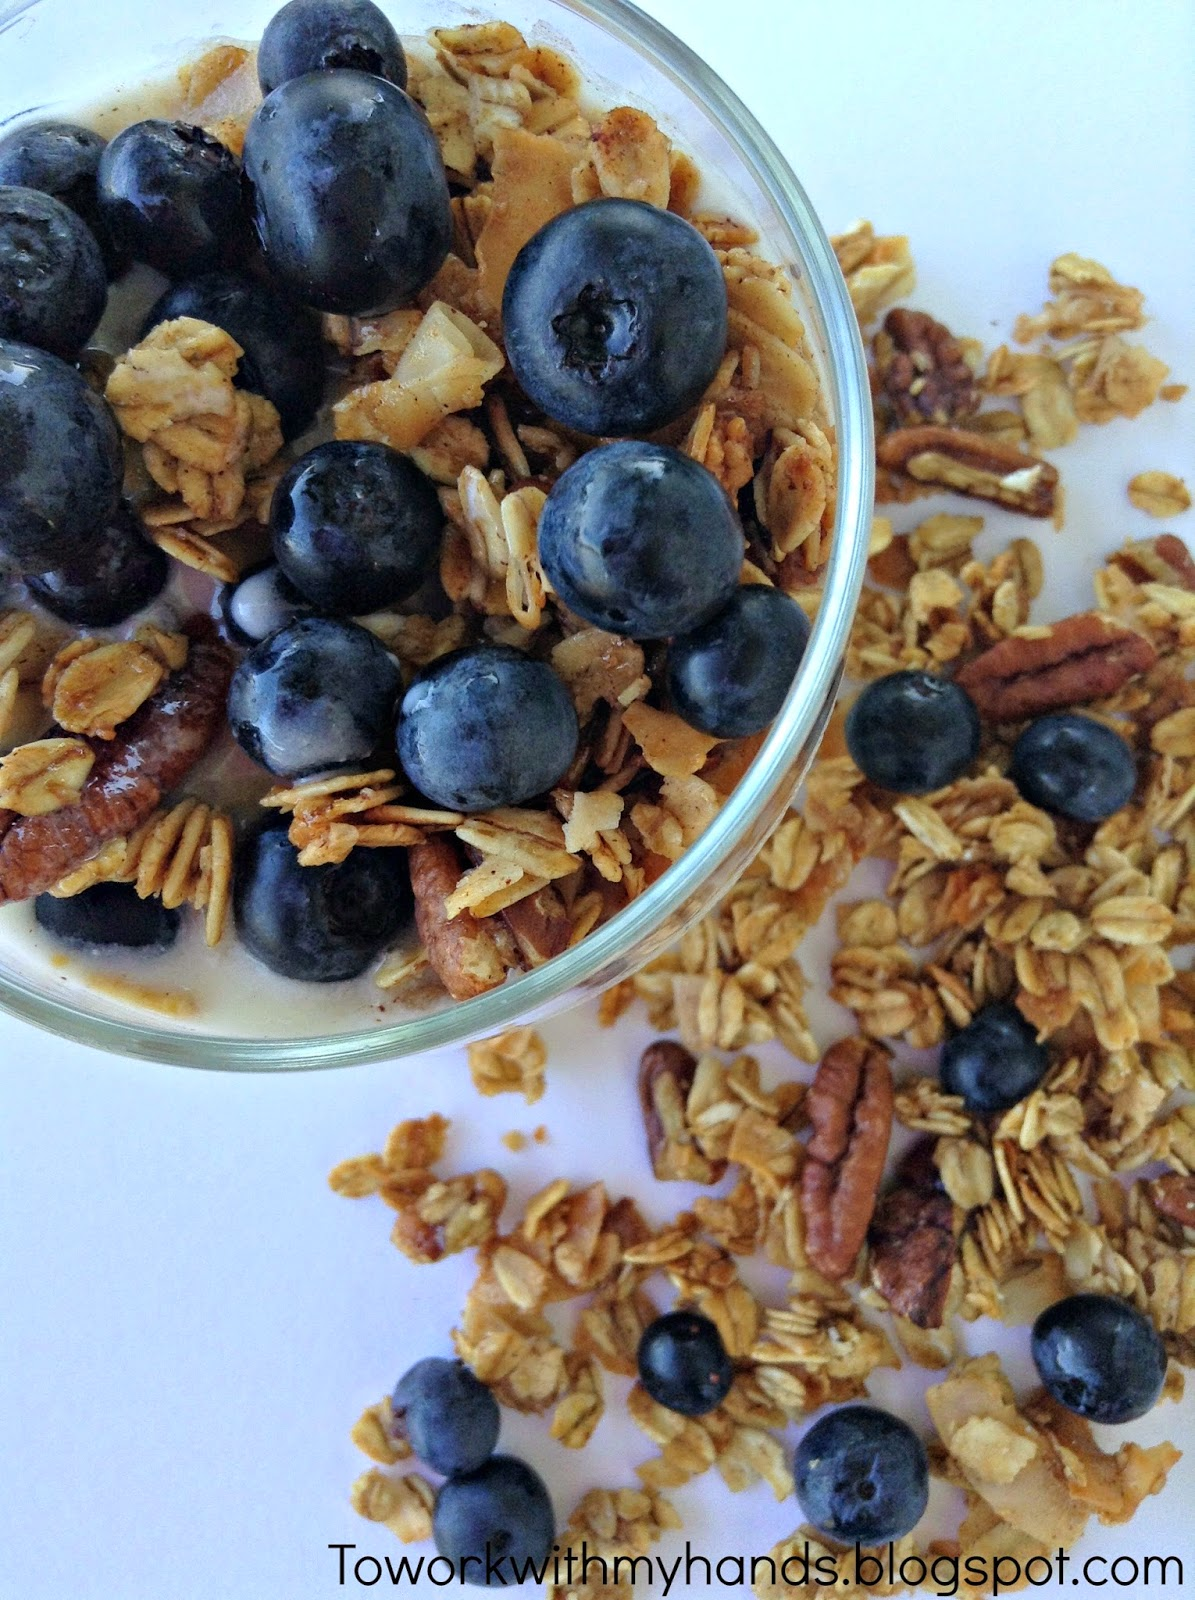 Yogurt + Granola + Fresh Blueberries = A delicious and filling summer breakfast or afternoon snack.